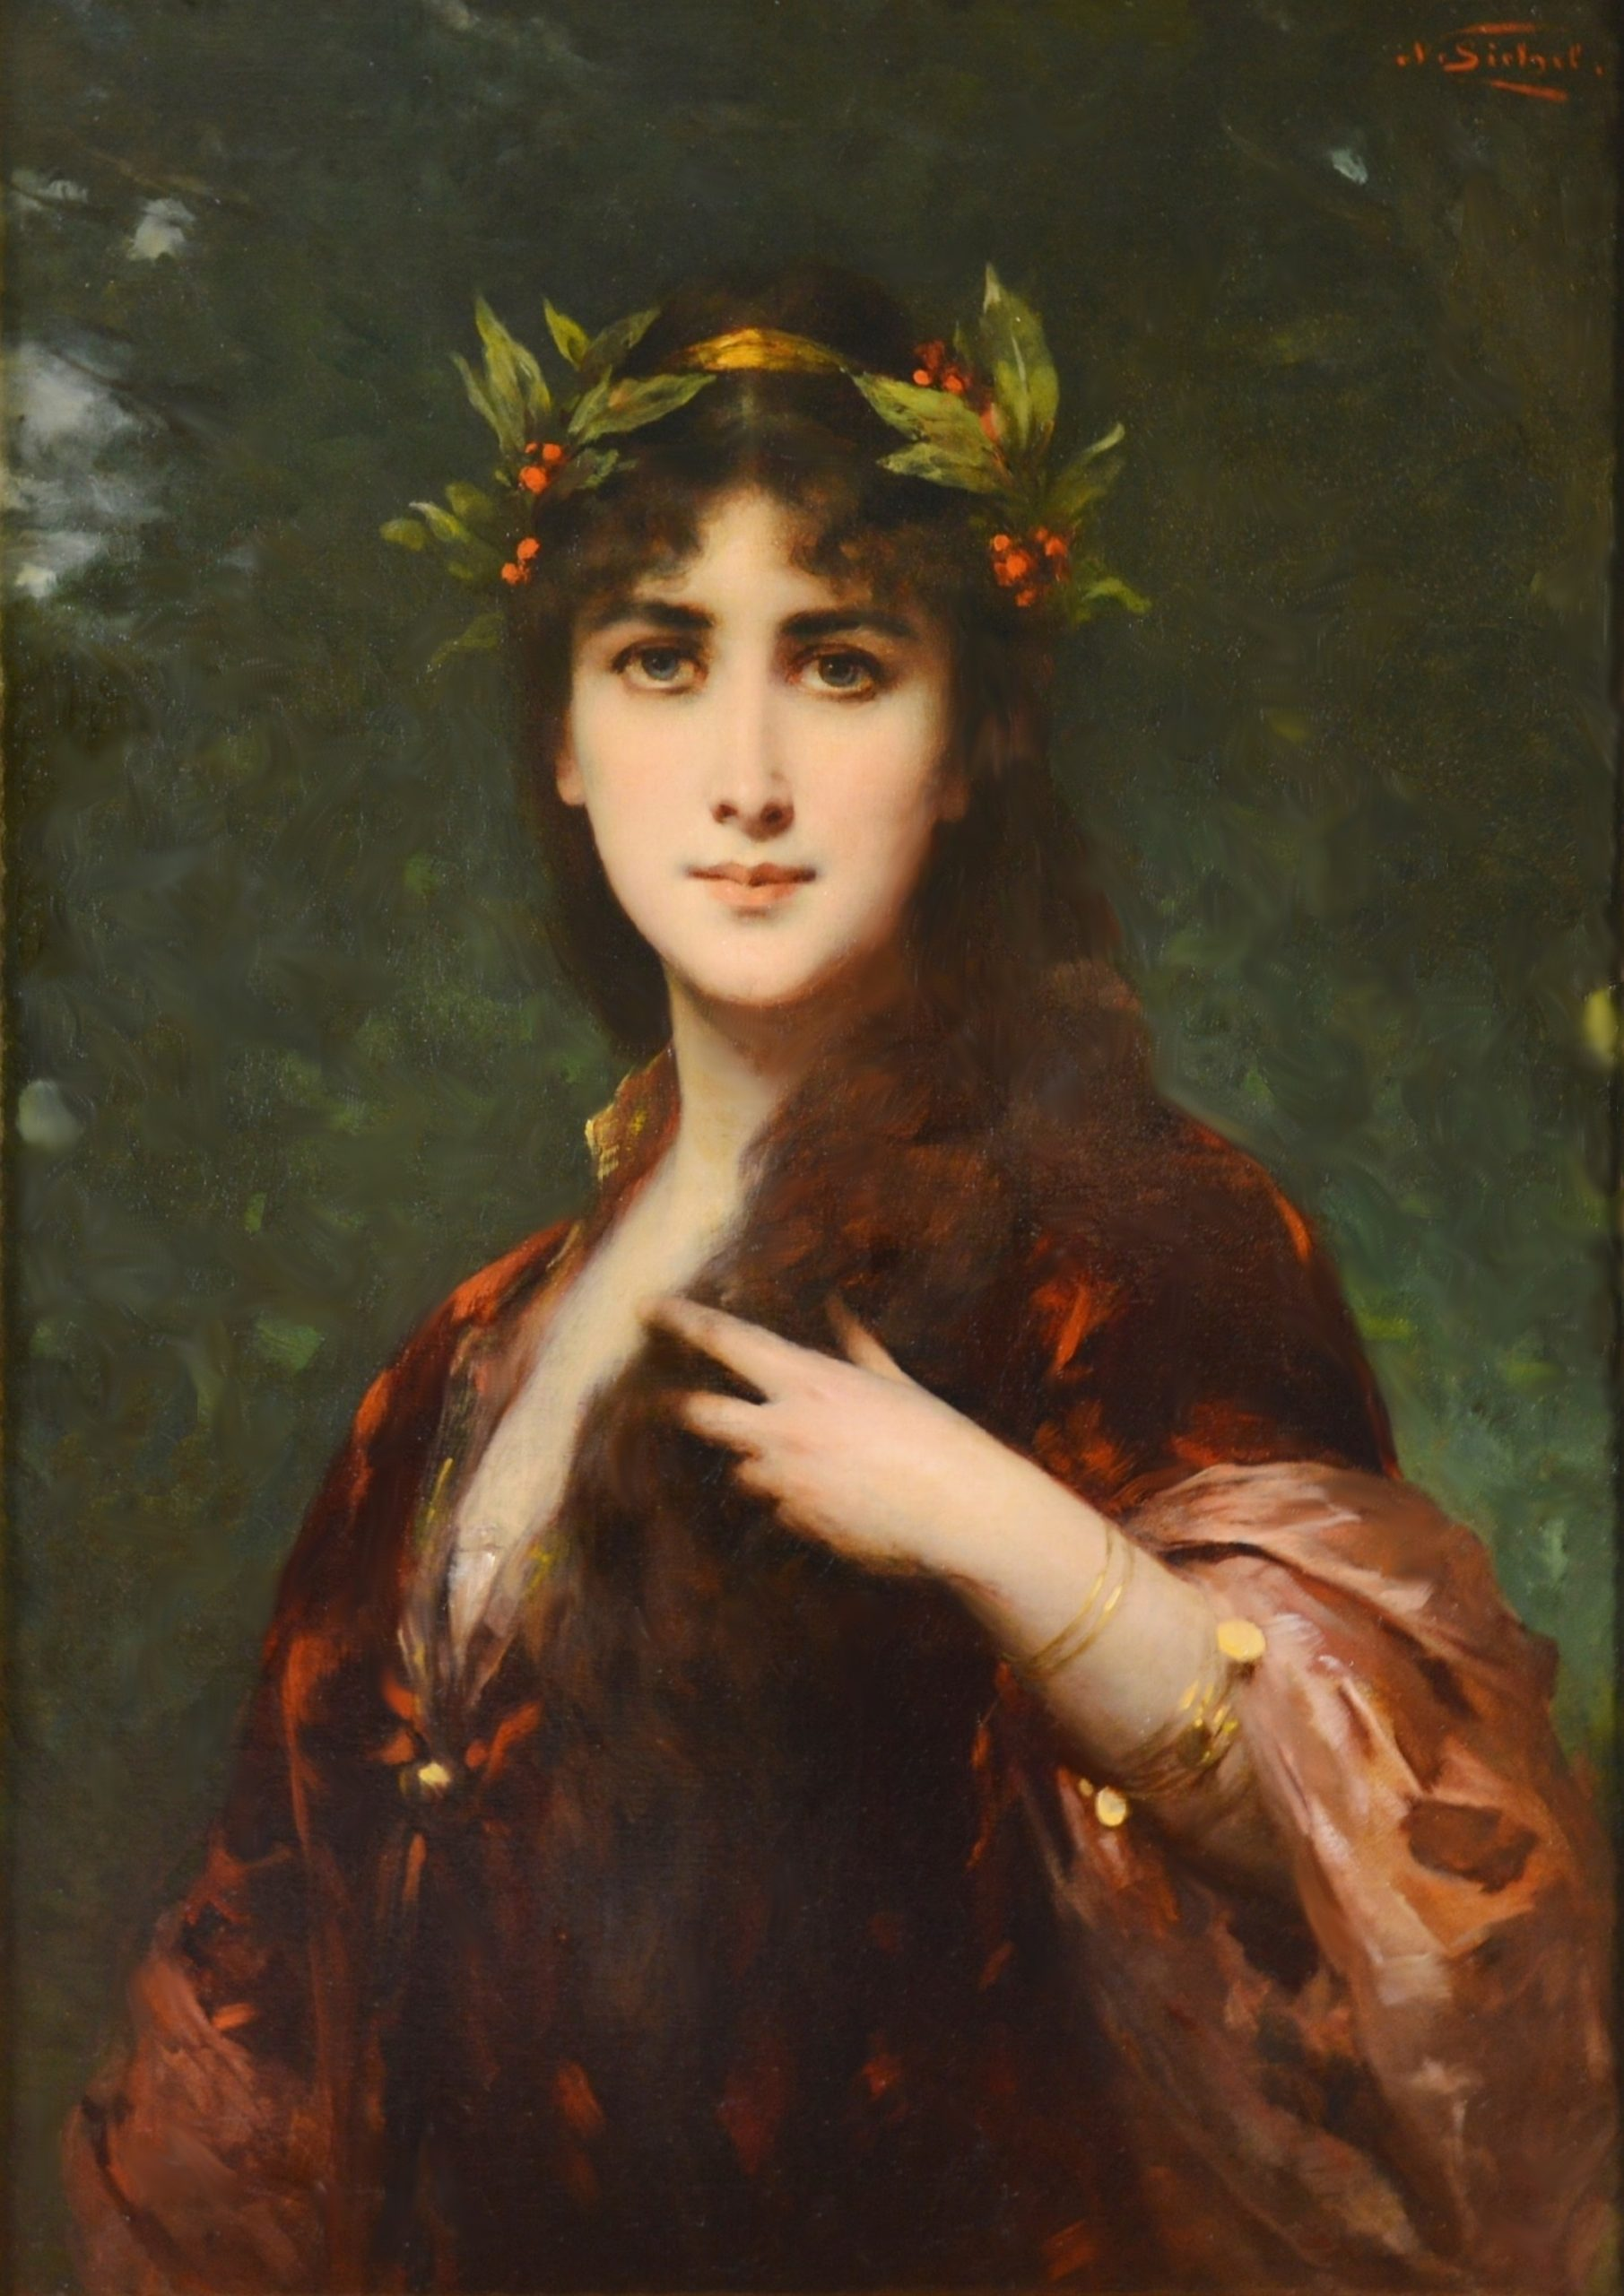 The Enchantress - Large 19th Century French Belle Epoque Portrait Oil Painting Image